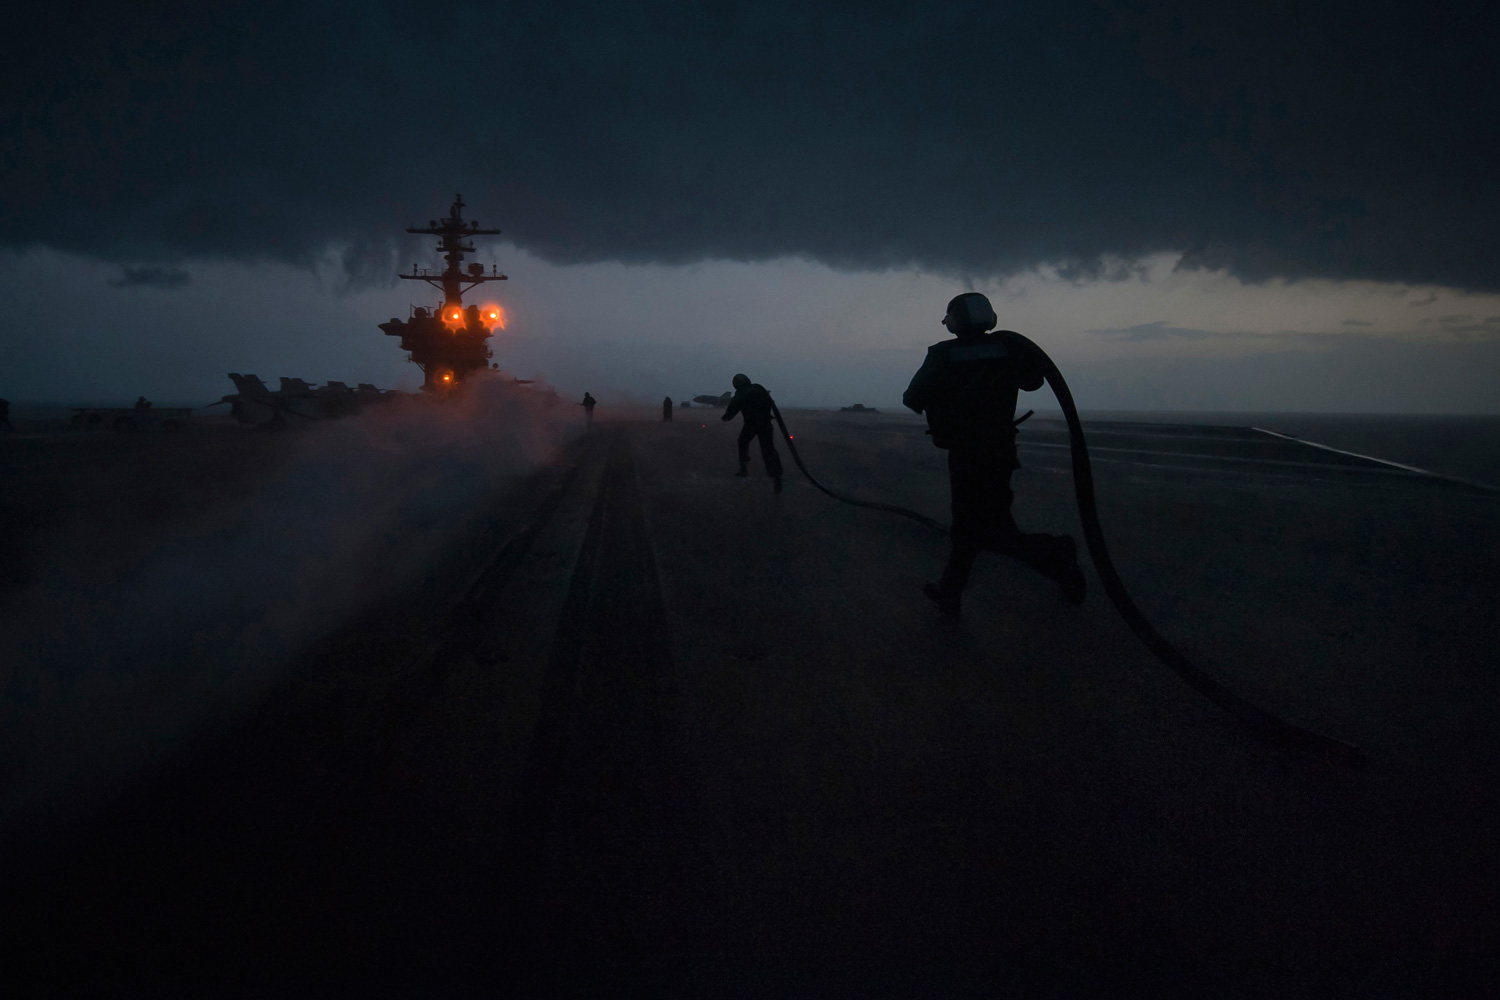 January 21, 2012. Sailors install slot seals in a catapult track after a launch as the aircraft carrier USS Carl Vinson passes through a storm in the Arabian Sea.